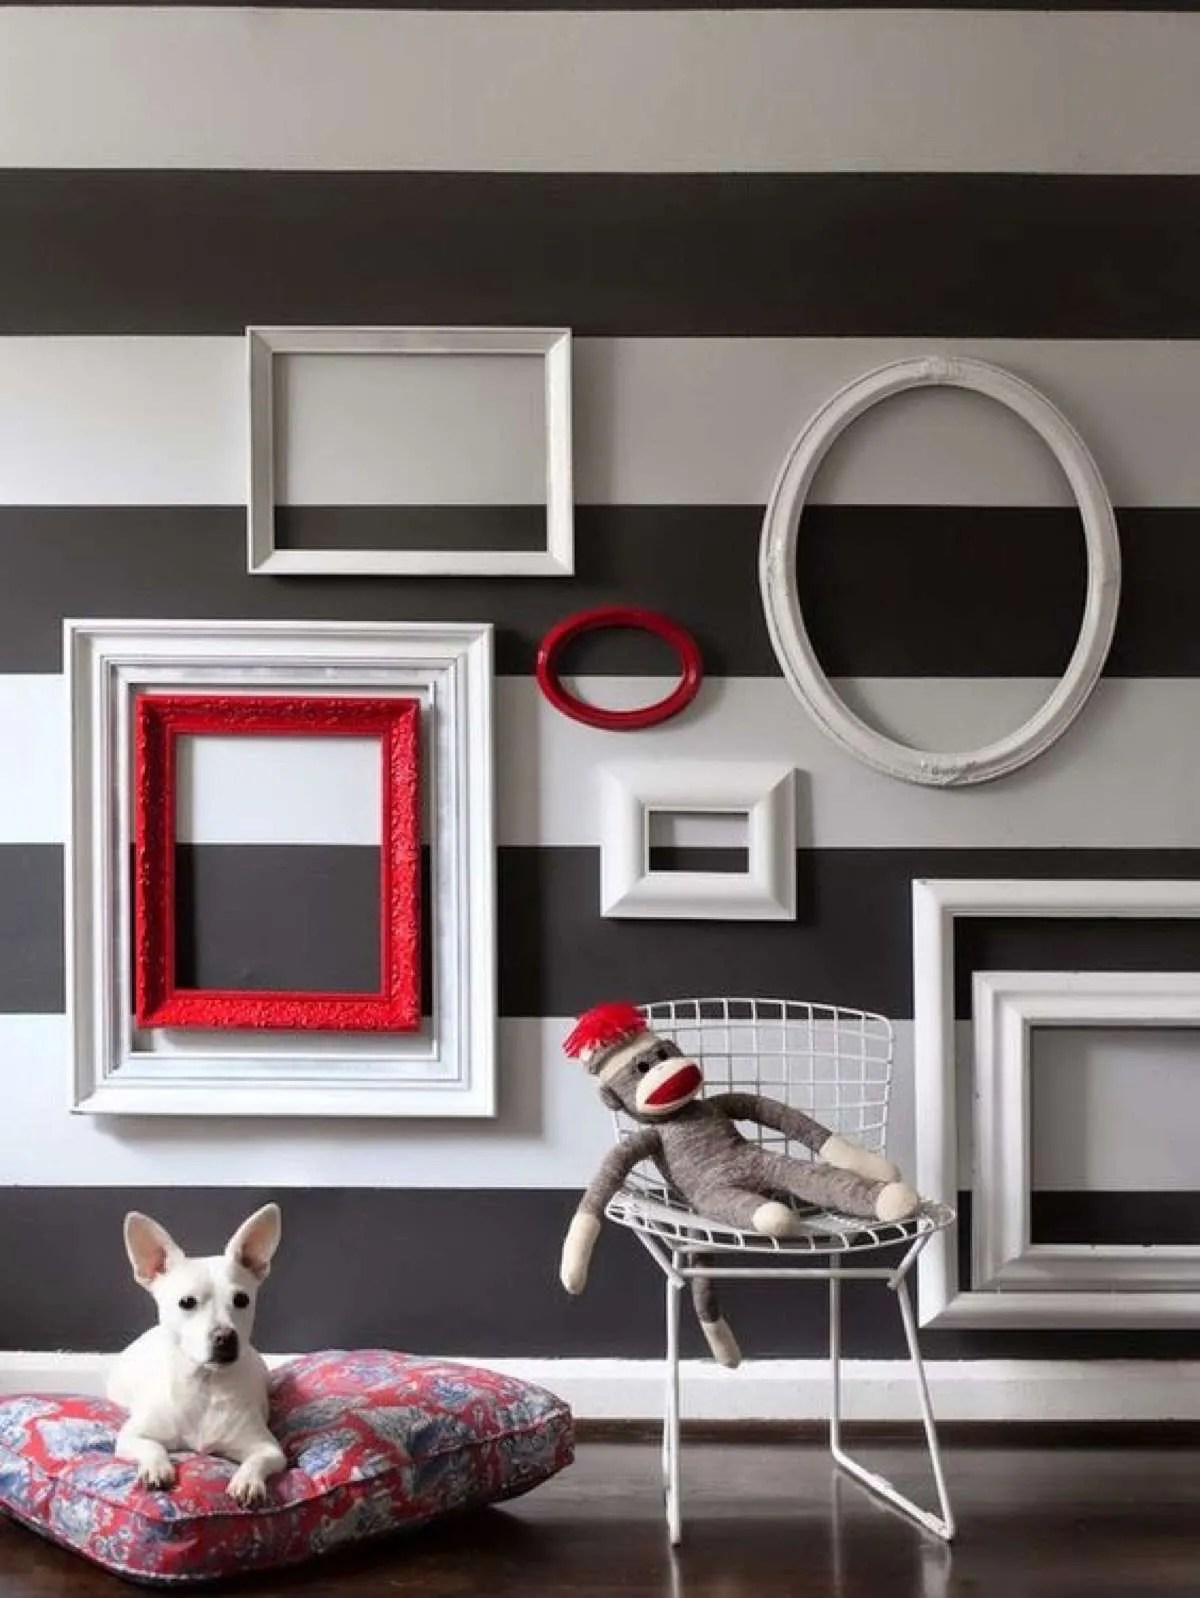 Como Decorar Una Pared Con Fotos 10 Ideas Originales Para Decorar Paredes Sin Cuadros